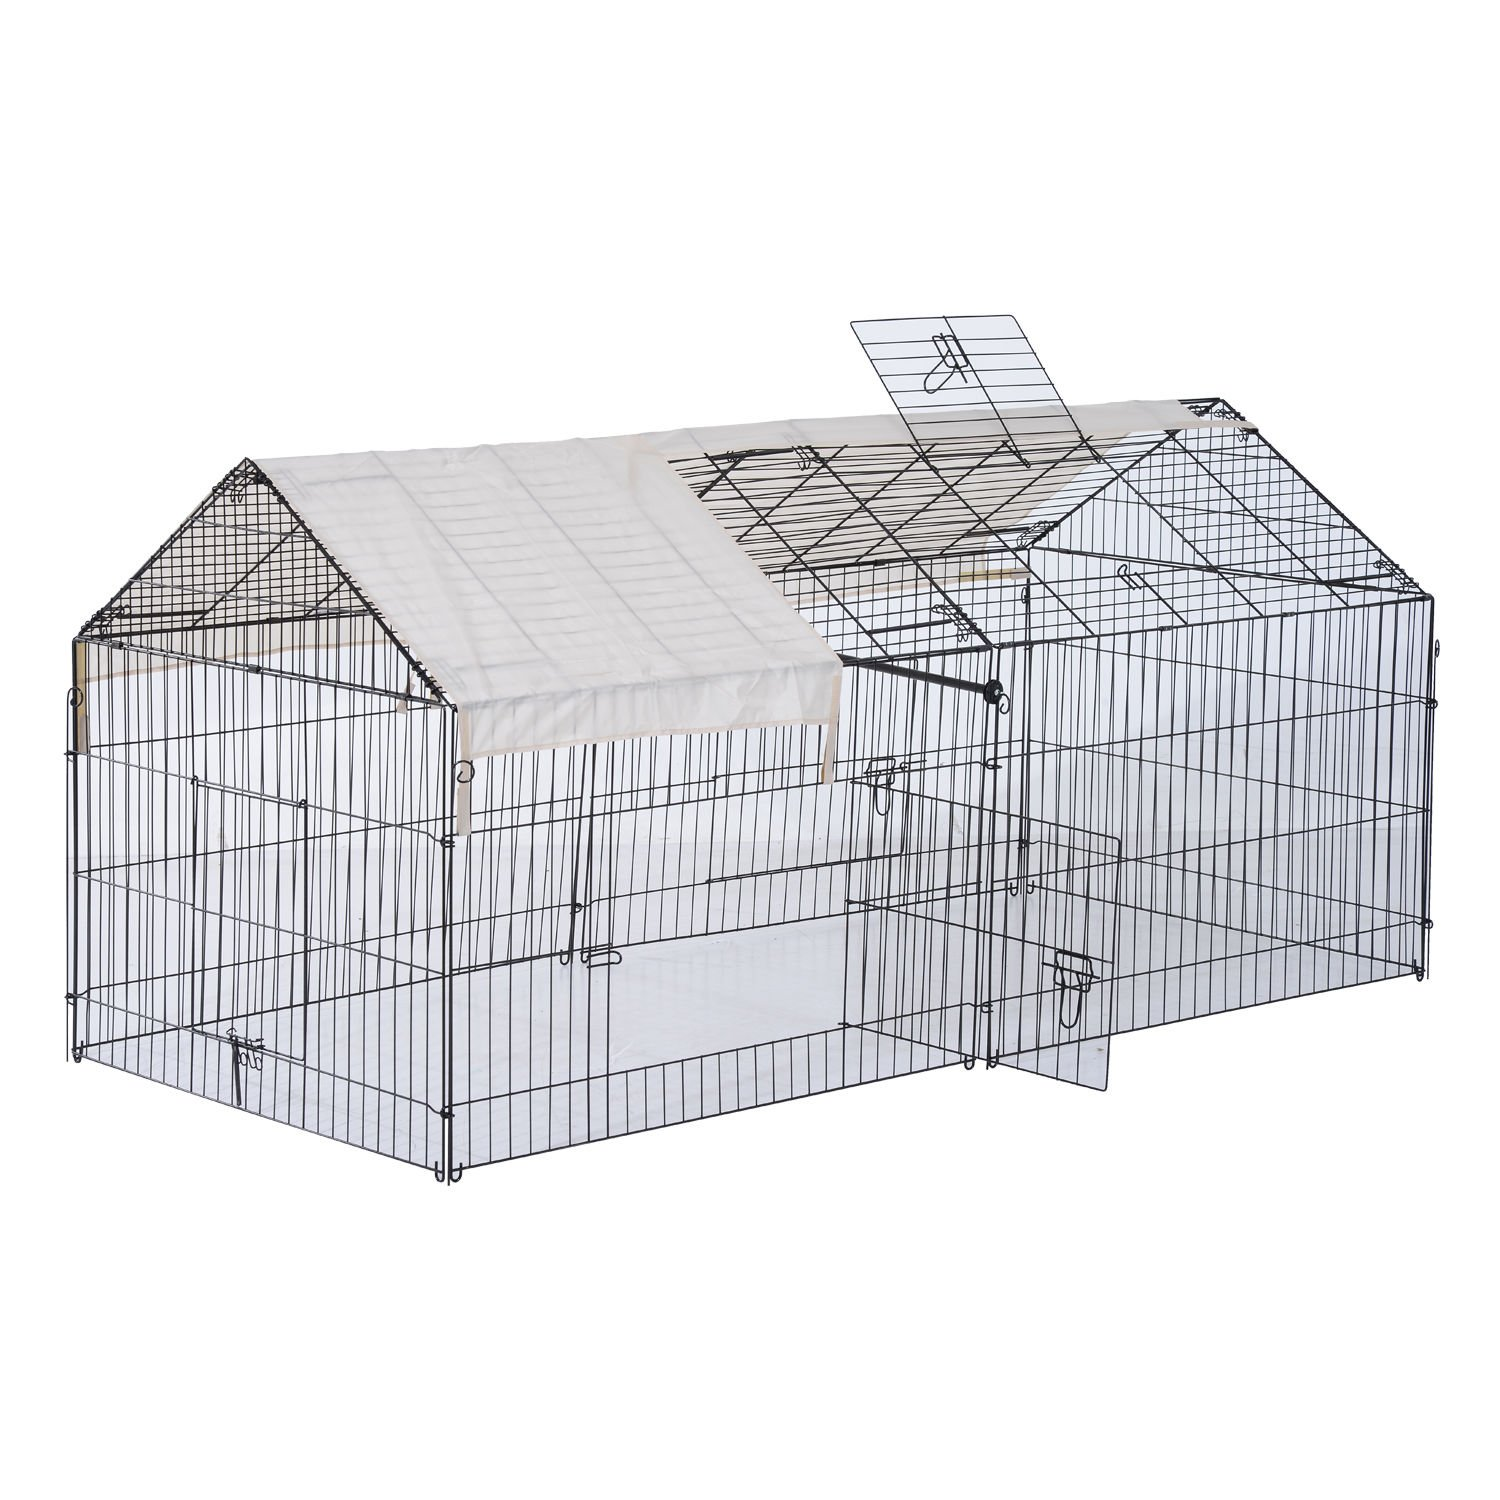 PawHut 87'' x 41'' Outdoor Metal Pet Enclosure Small Animal Playpen Run for Rabbits, Chickens, Cats, Small Animals by PawHut